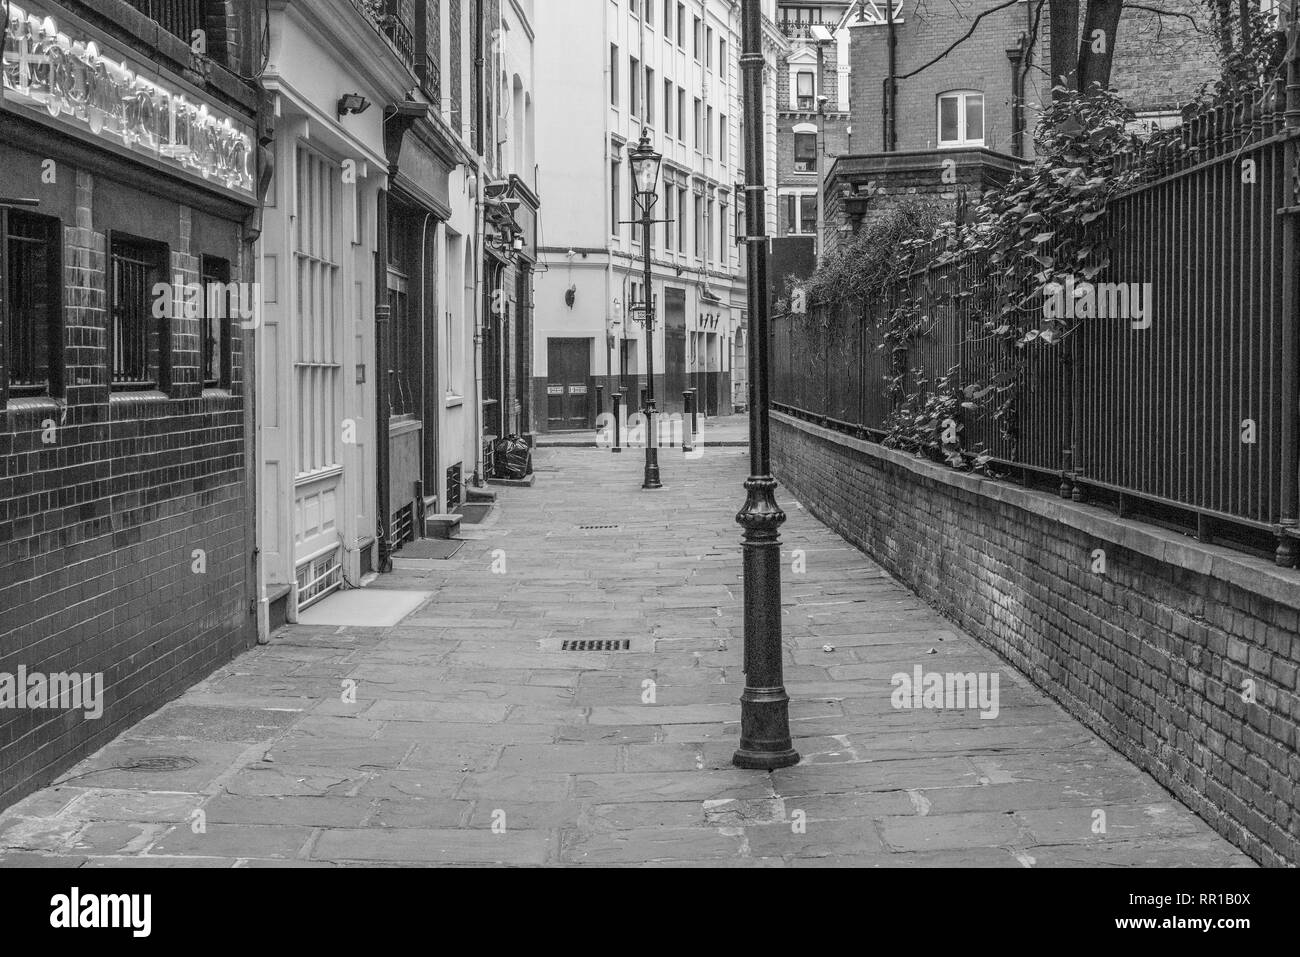 Empty, classical London street with street lamp without people - Stock Image